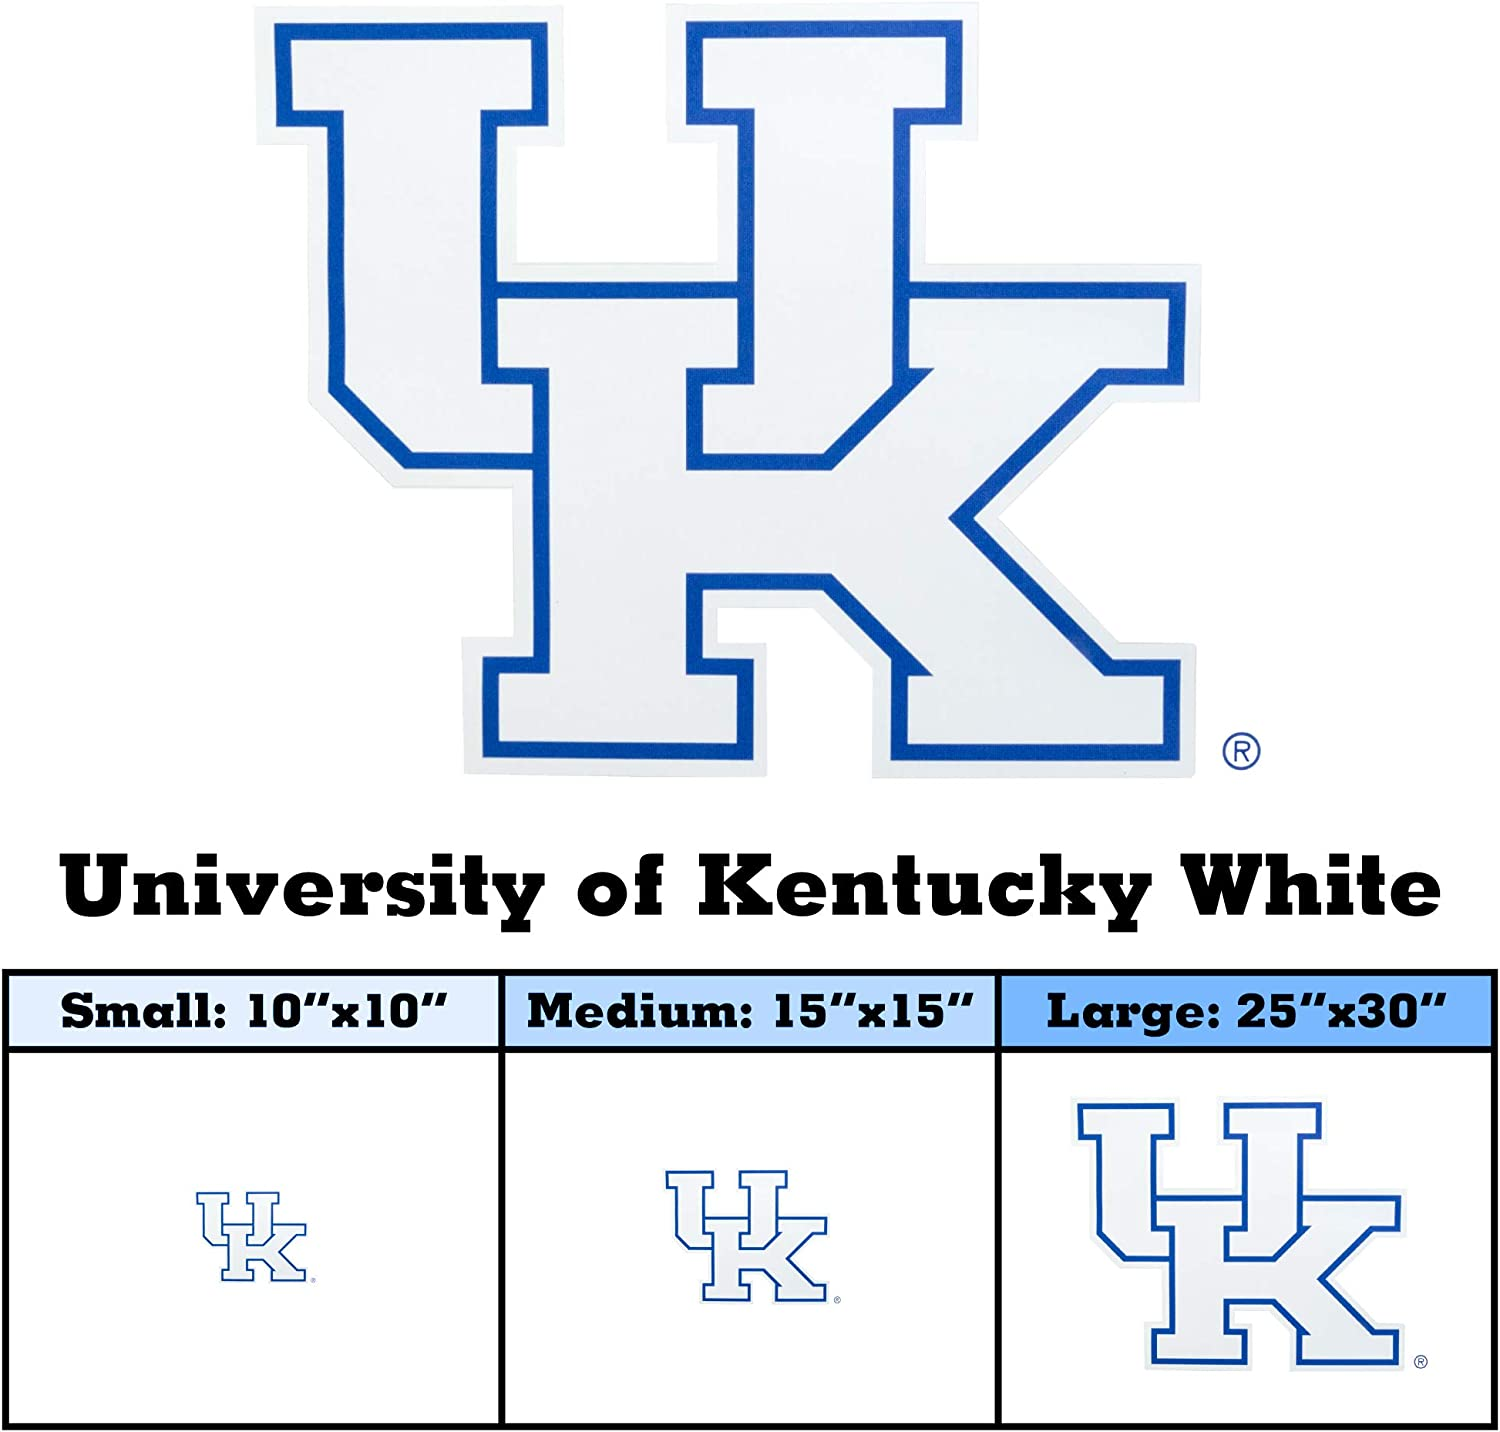 Premium Reusable Athletic Stickers University of Kentucky White, 15 x 15 Trucks Tailgating Cars GameDay Graphics University of Kentucky Vehicle Sticker Decals College Sports Teams